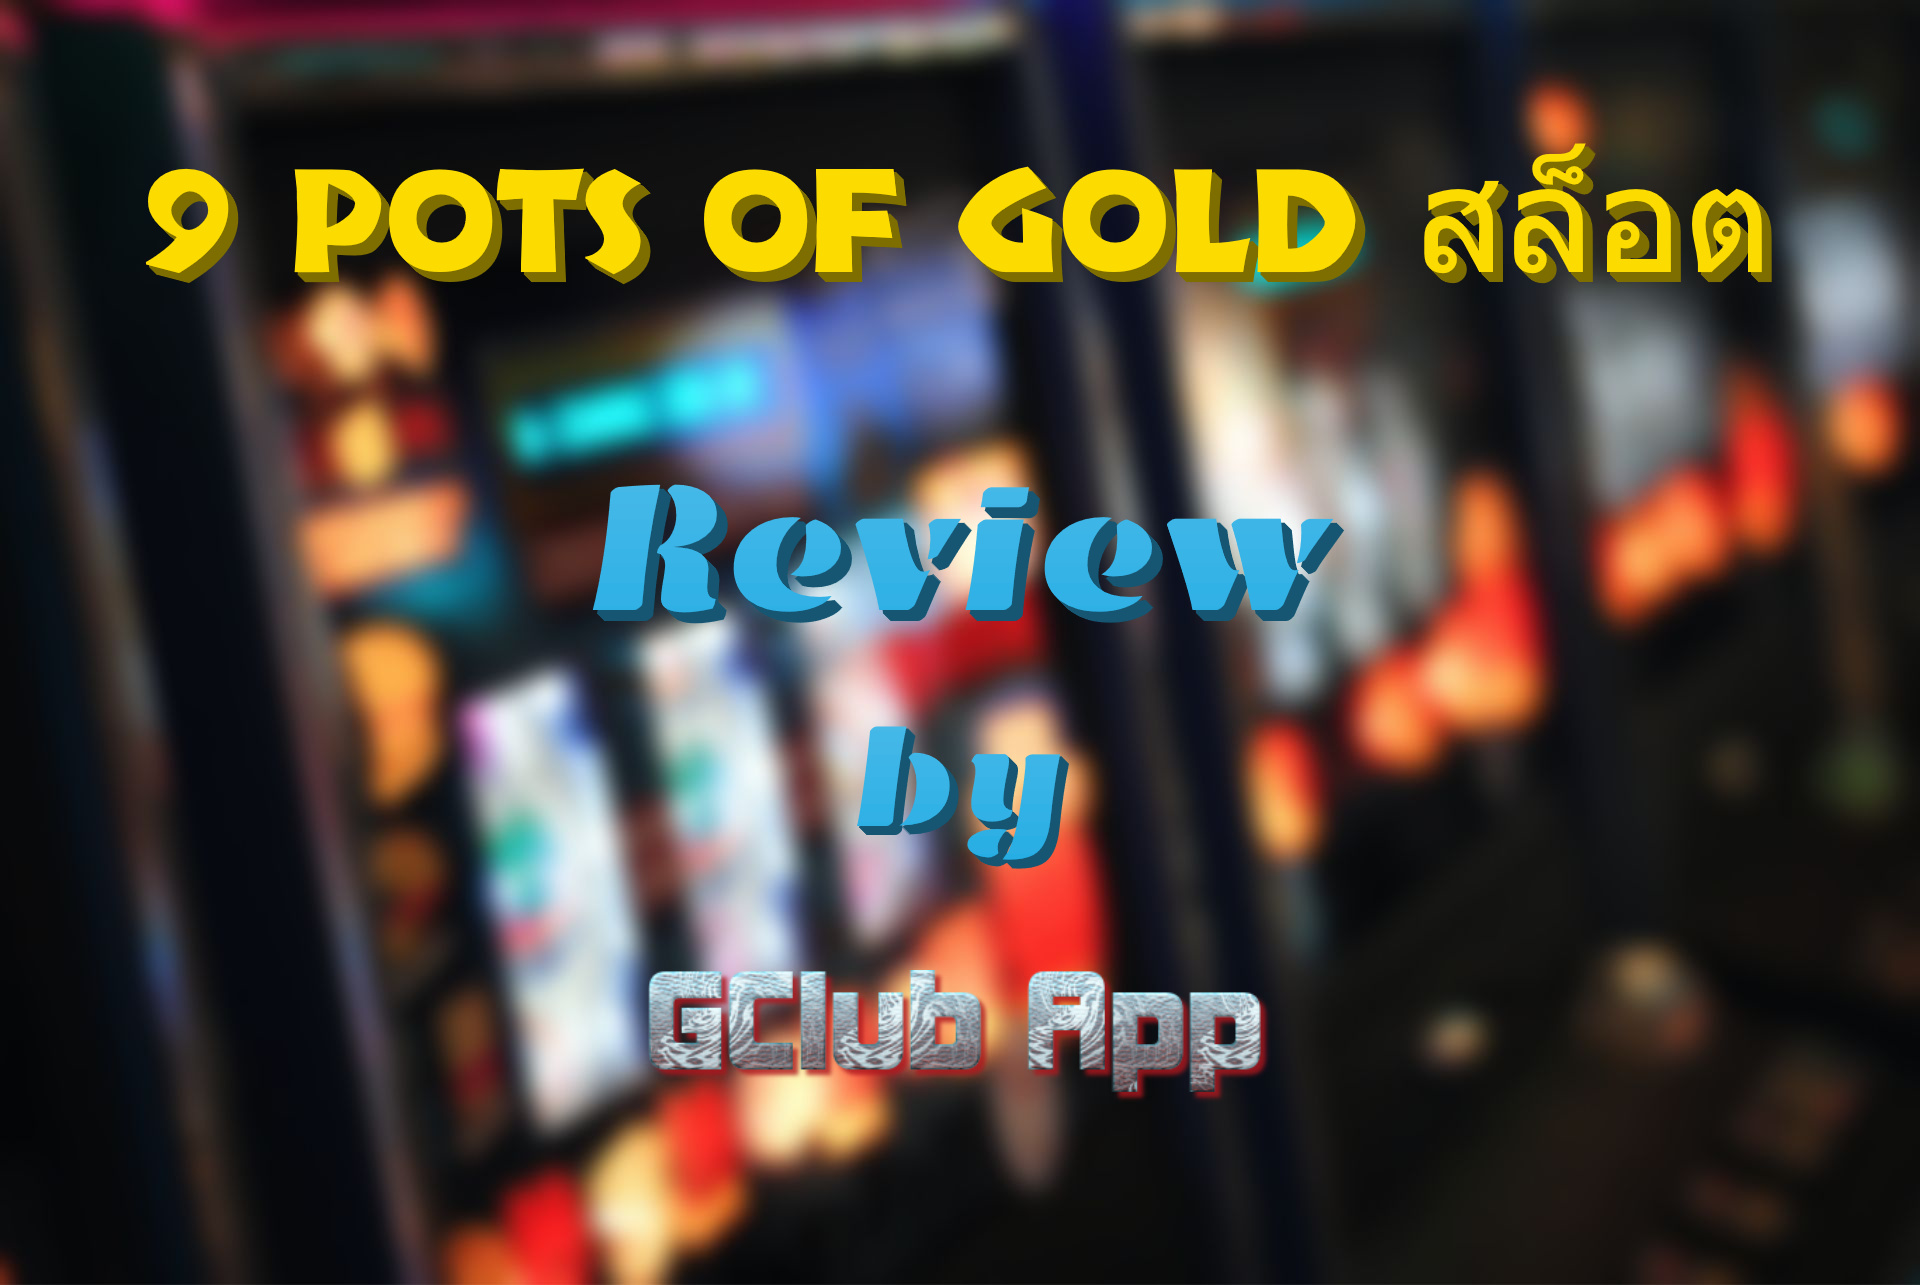 9 Pots of Gold Review